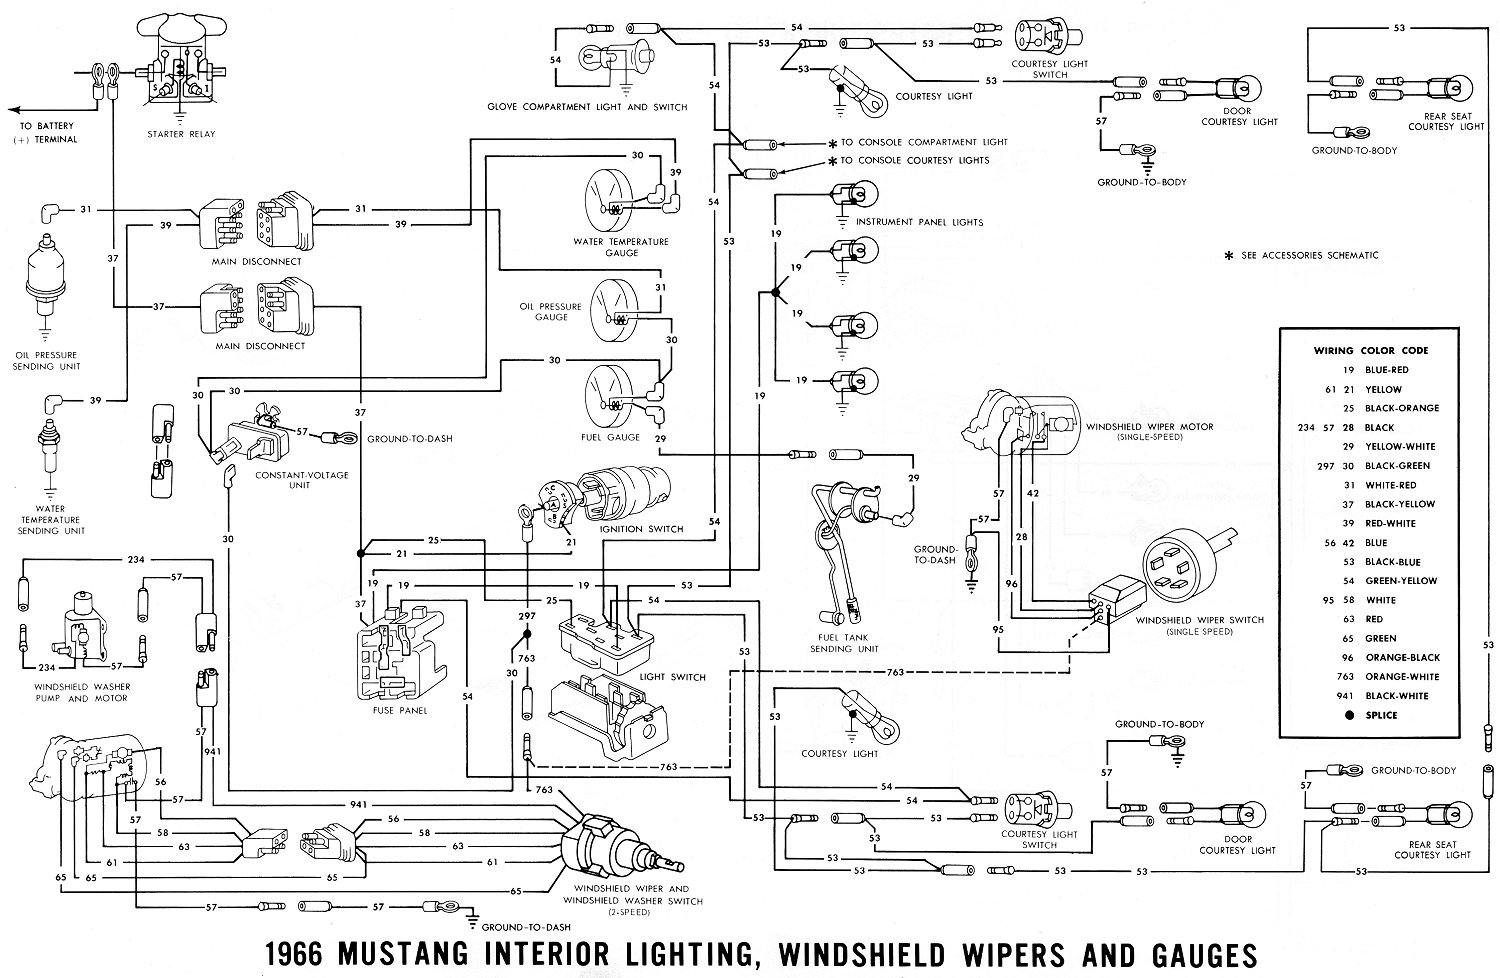 1966 mustang wiring diagrams average joe restoration rh  averagejoerestoration com 1999 ford mustang stereo wiring harness